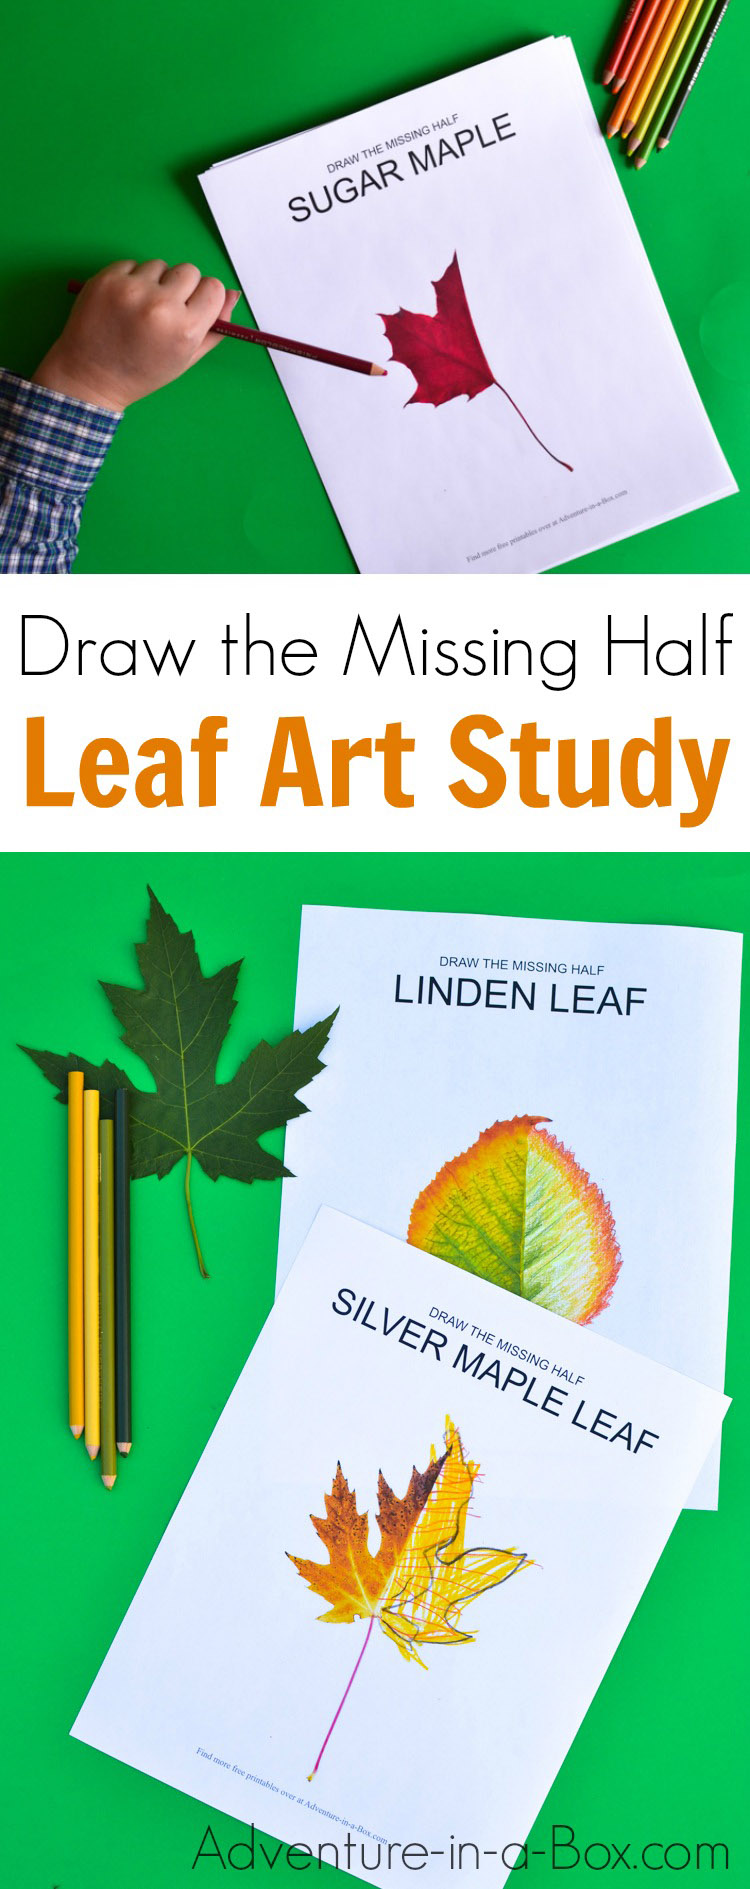 Challenge Your Kids To Draw The Missing Half Of A Leaf Fun Autumn Nature